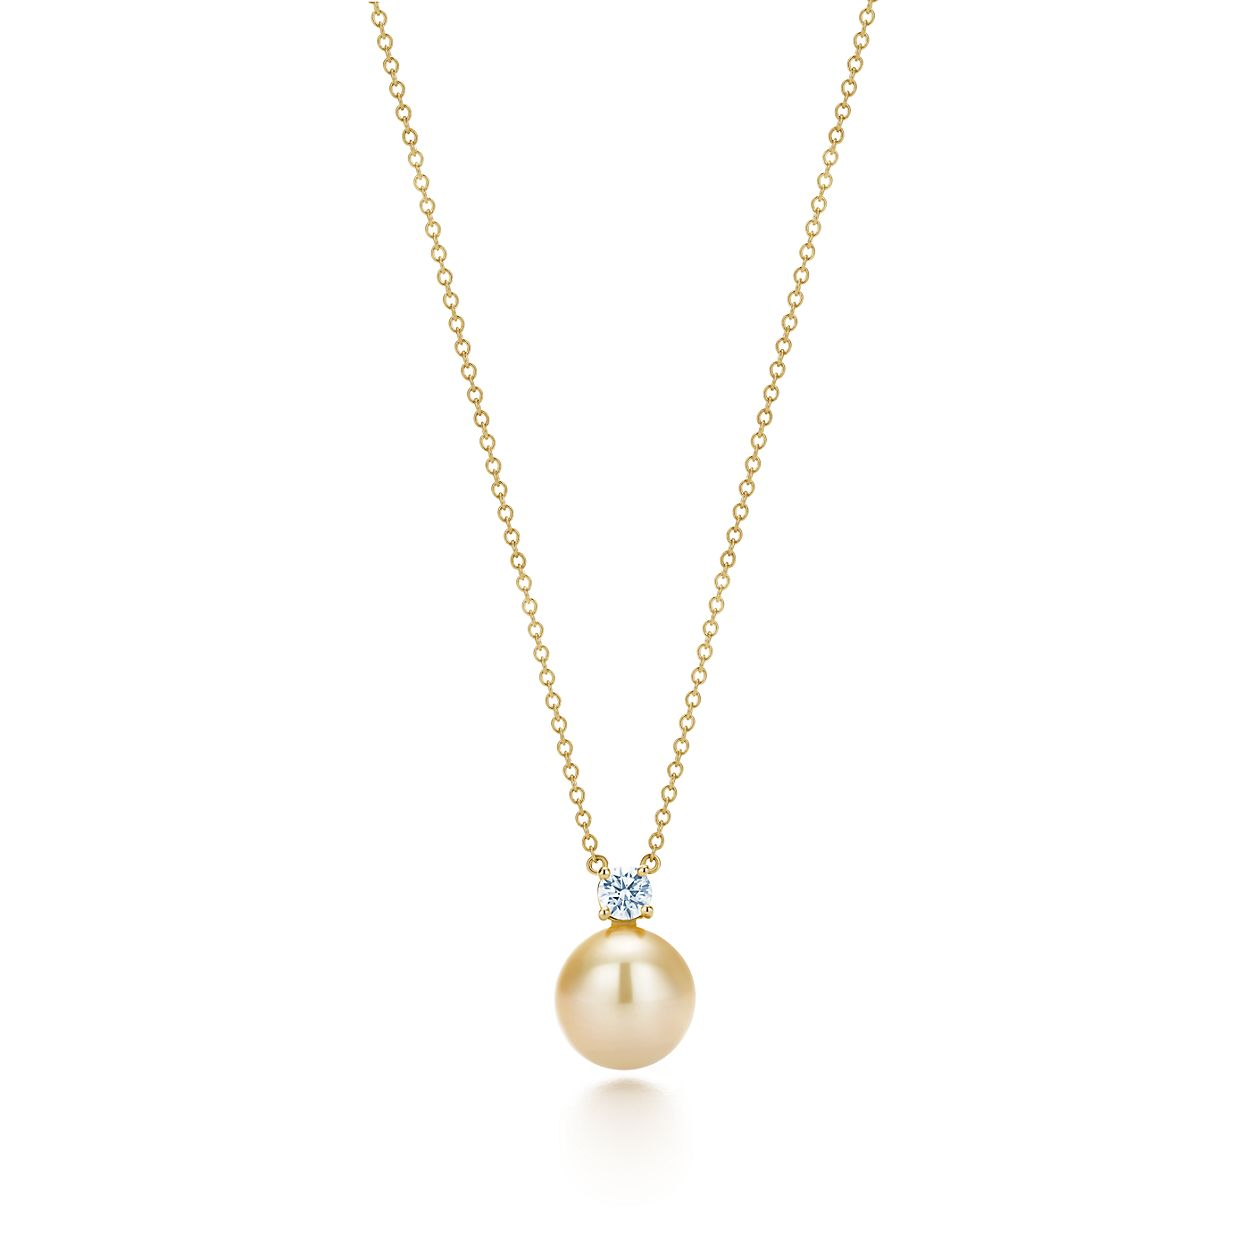 wid pearls id gold diamonds and with fmt fit tahitian pendant white ed hei constrain pendants in necklaces pearl jewelry